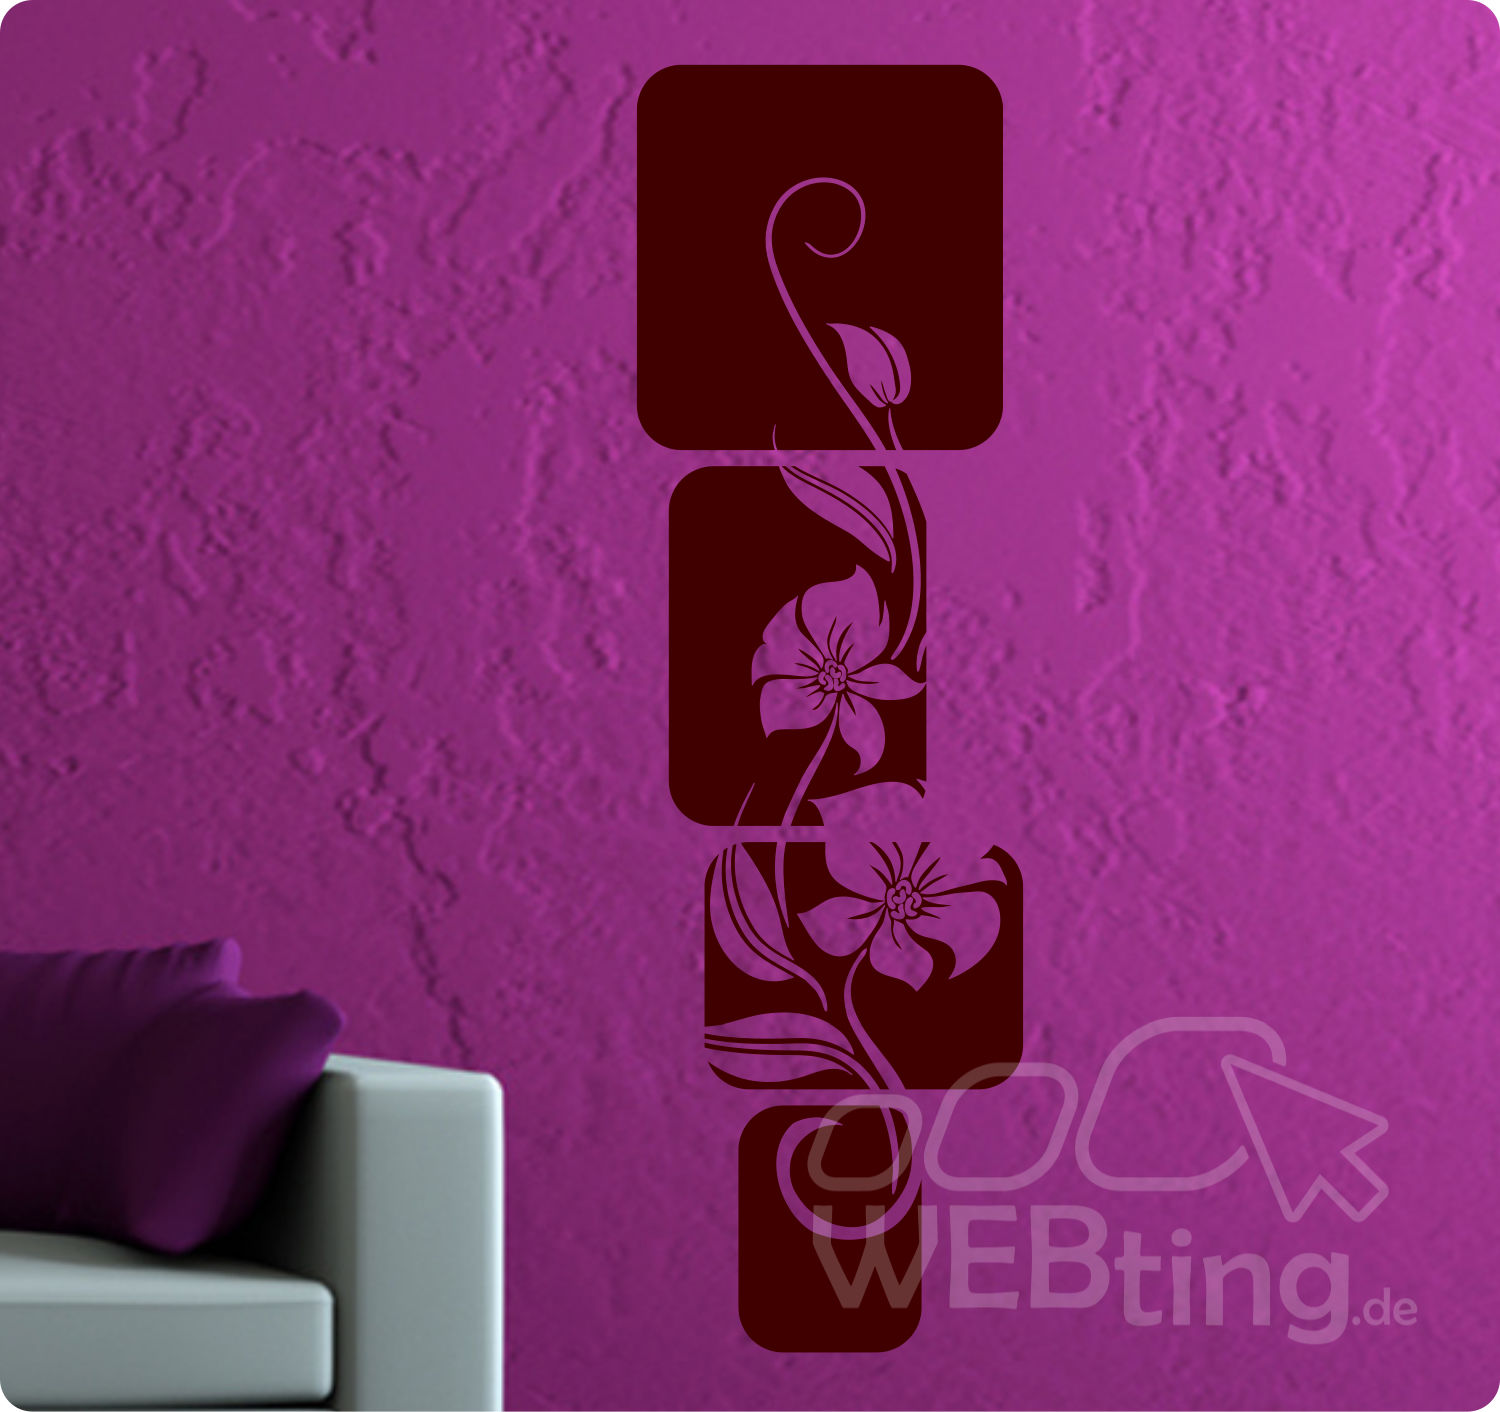 xxl wandtattoo banner blumen ranke wandaufkleber aufkleber streifen deko. Black Bedroom Furniture Sets. Home Design Ideas